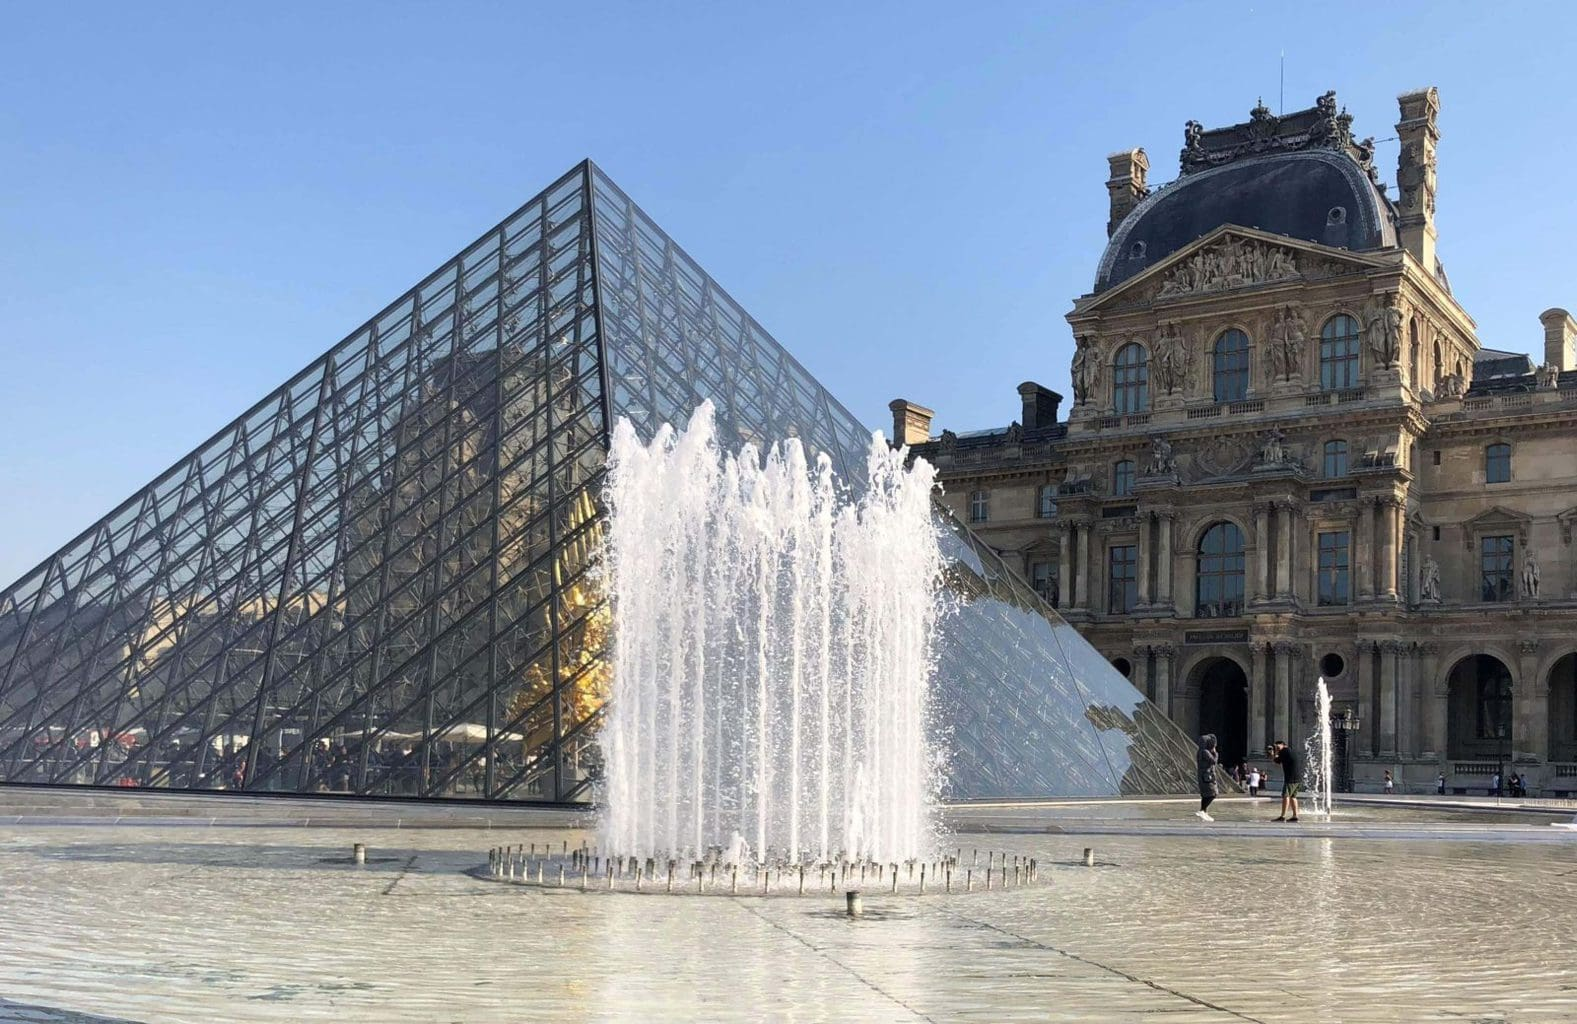 Louvre - one of the most famous landmarks in Paris